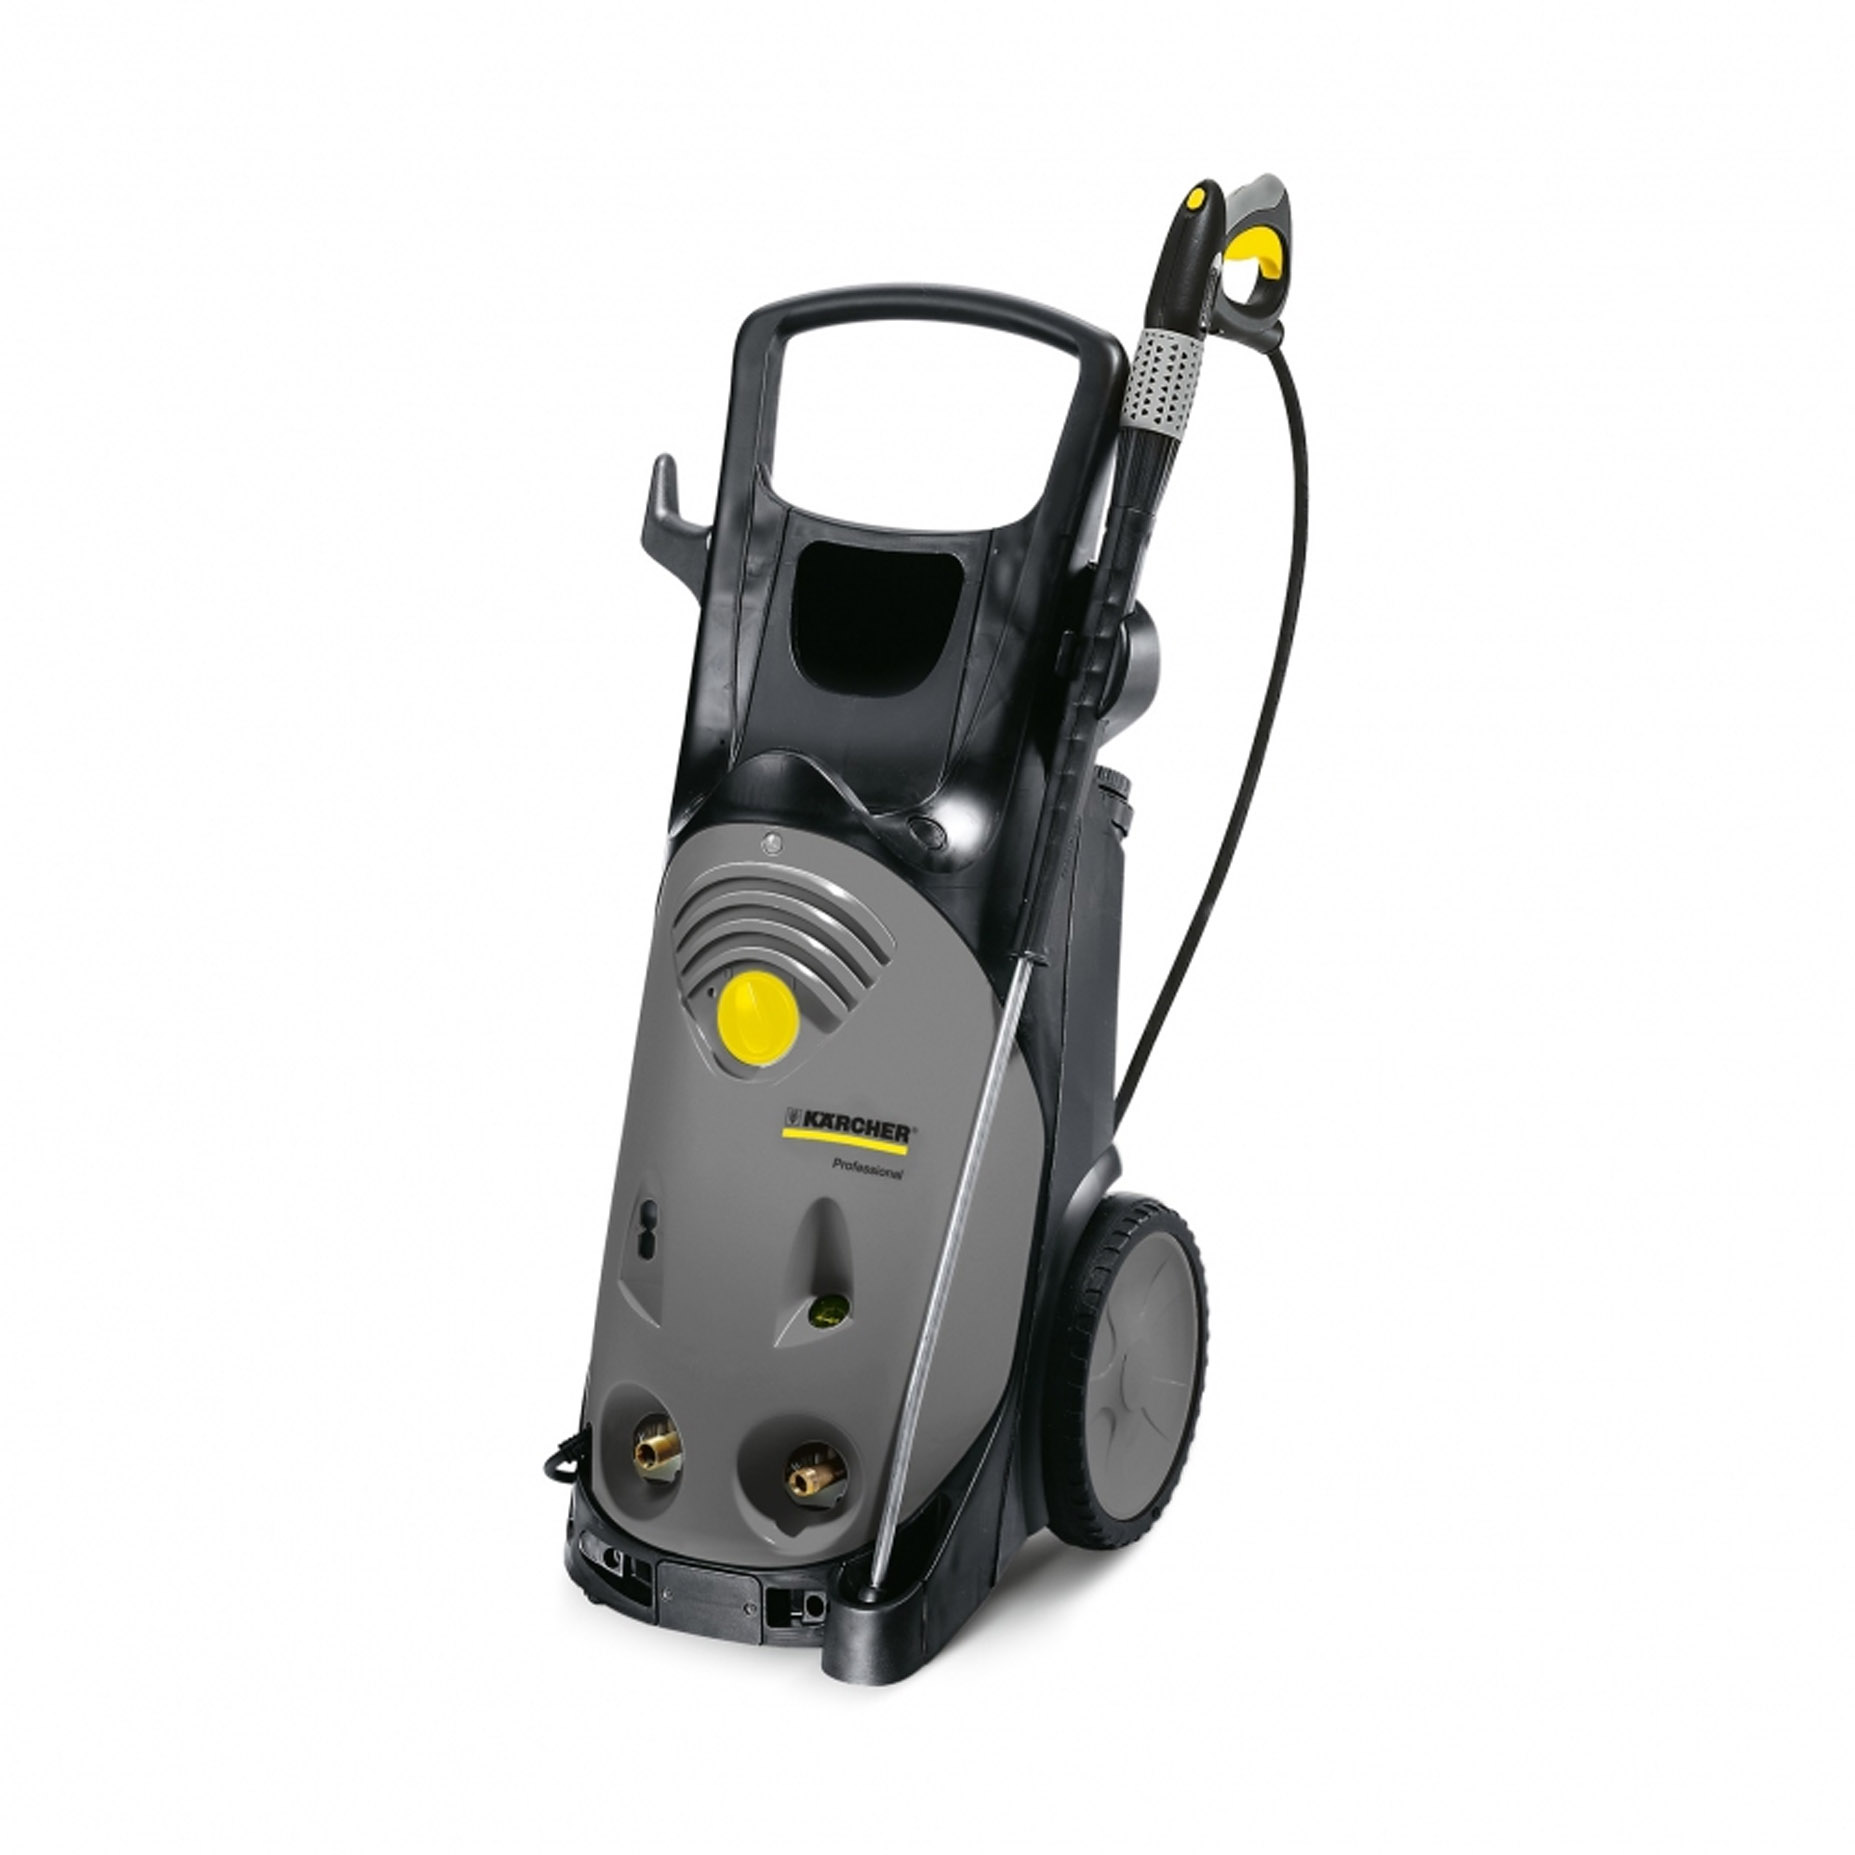 Harga Karcher Vc 6100 Hepa 12 Filter Dry Vacuum Cleaner Hand Dryer Krisbow 1800w 220v Kw2001296 Hd 10 25 4 S Plus Classic High Pressure Cleaners Cold Water